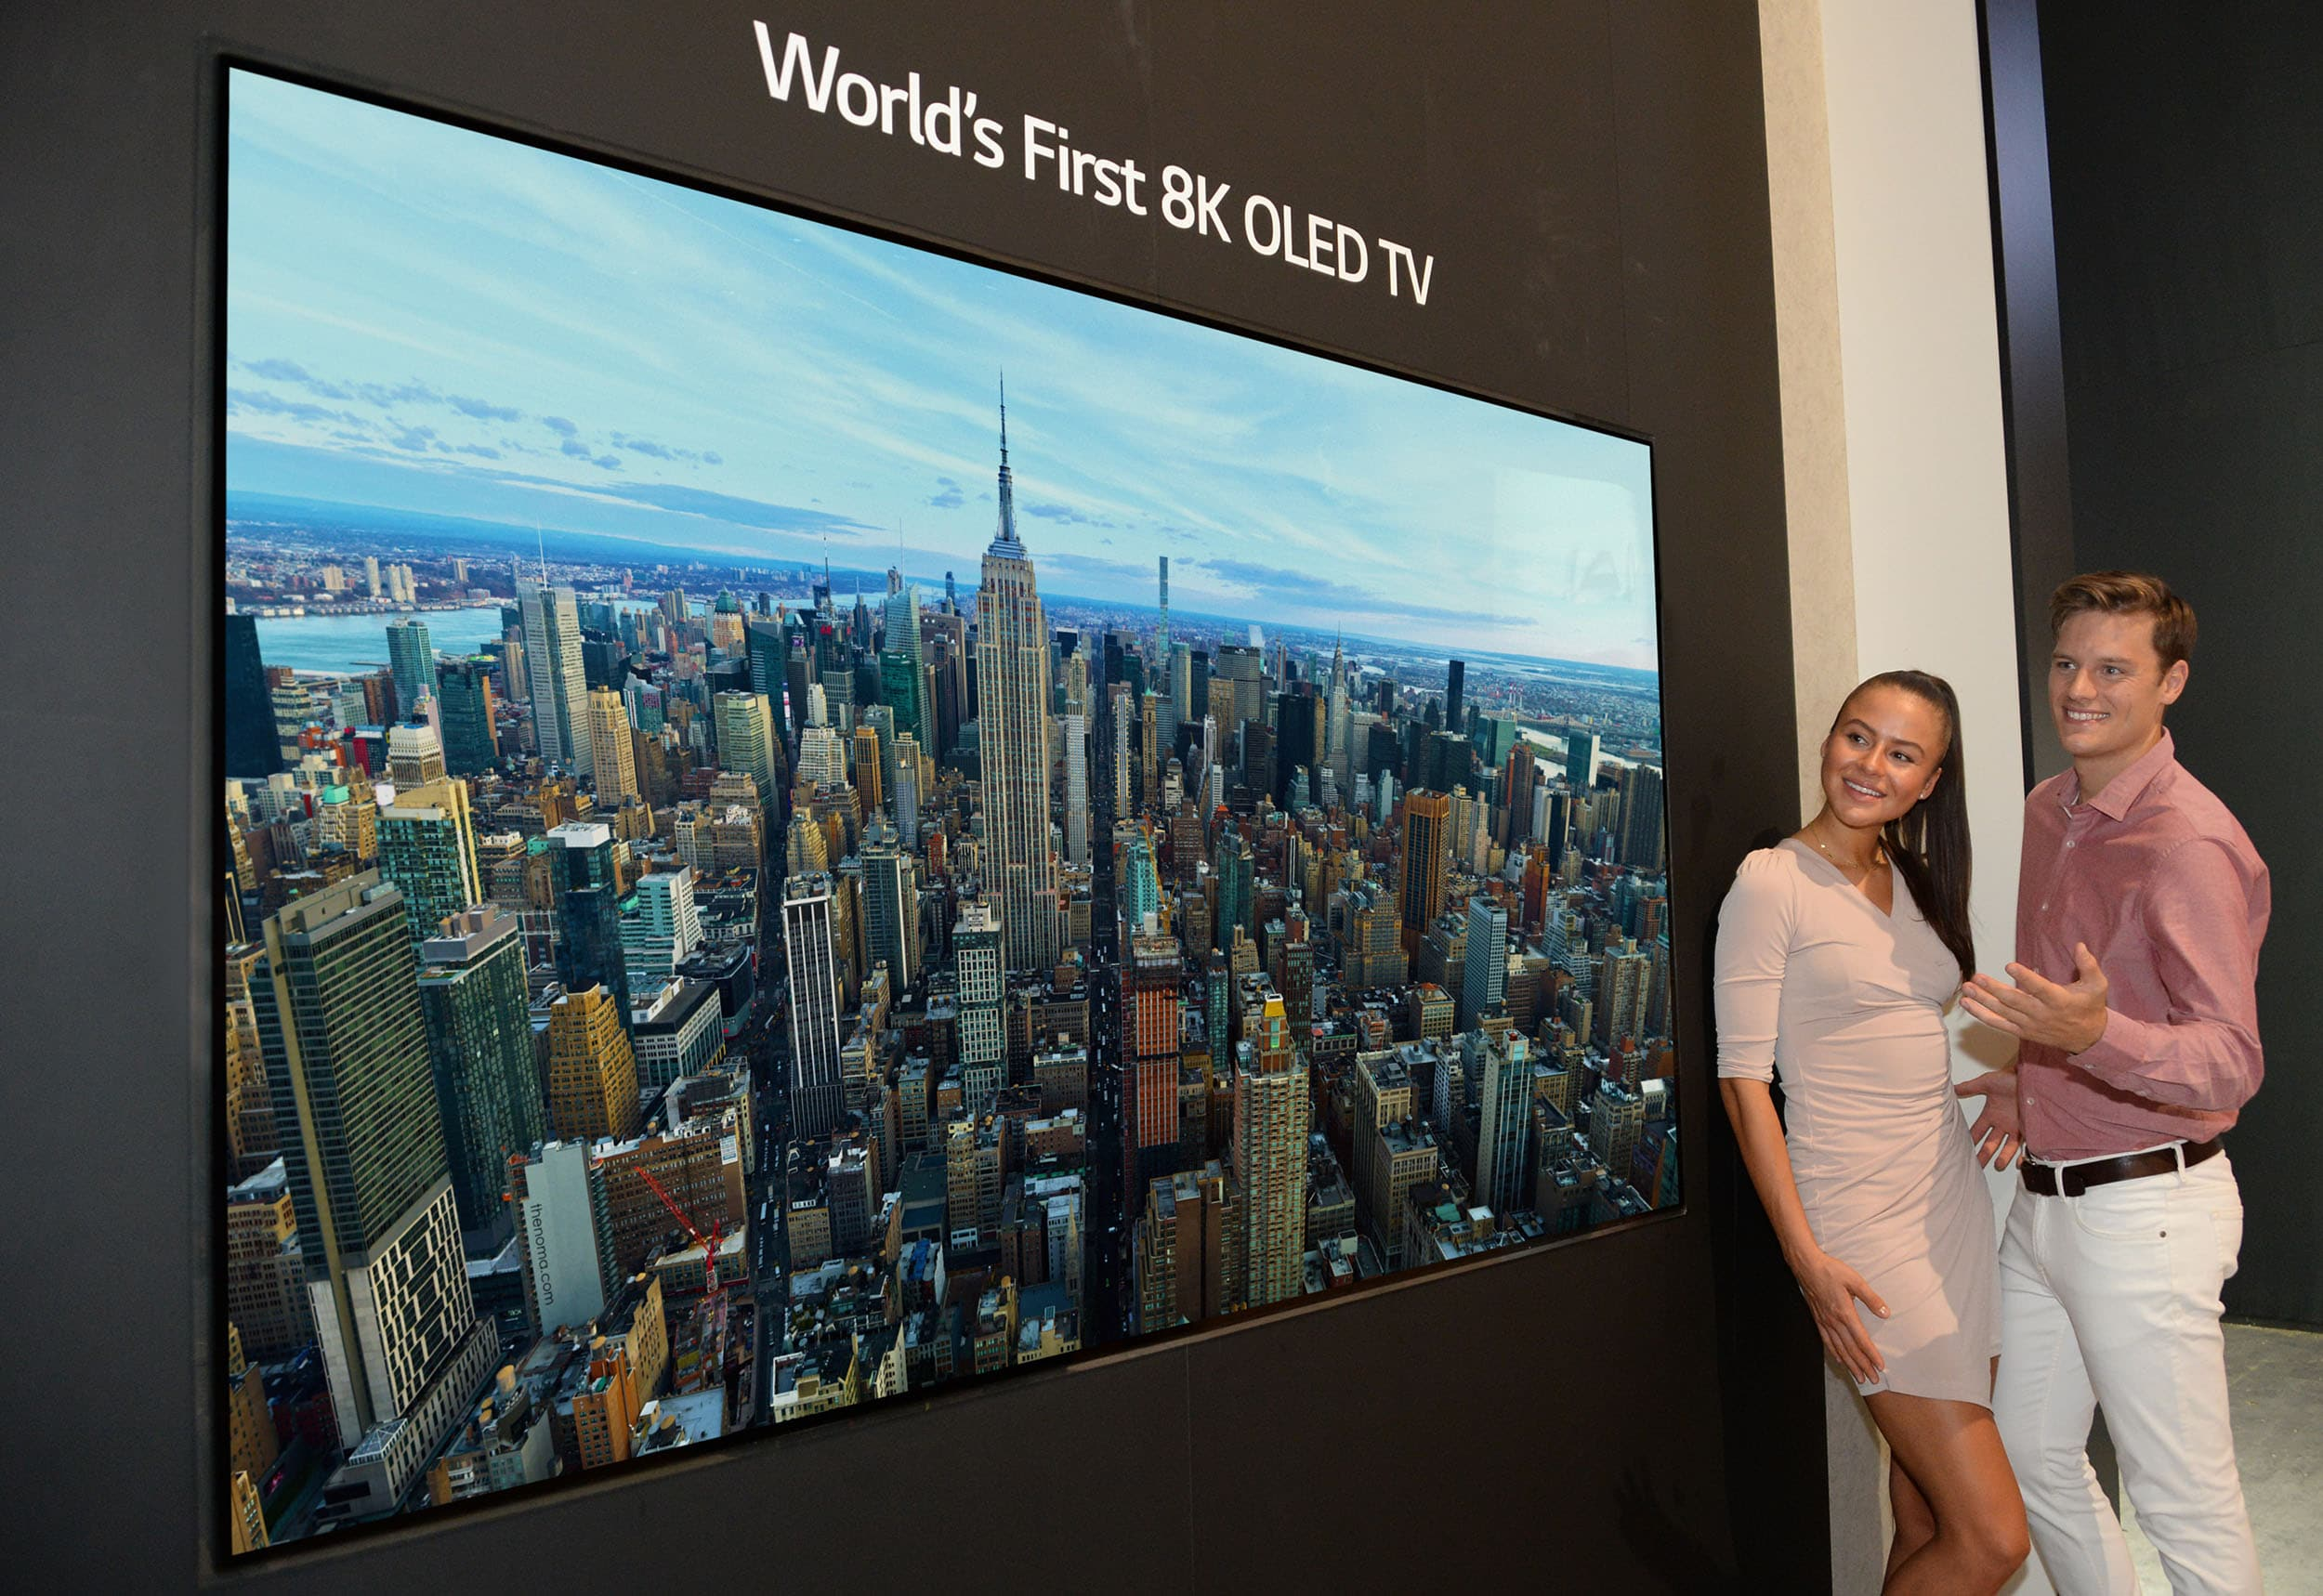 LG's 8K OLED TVs are waiting for June 201? maybe the release will be delayed